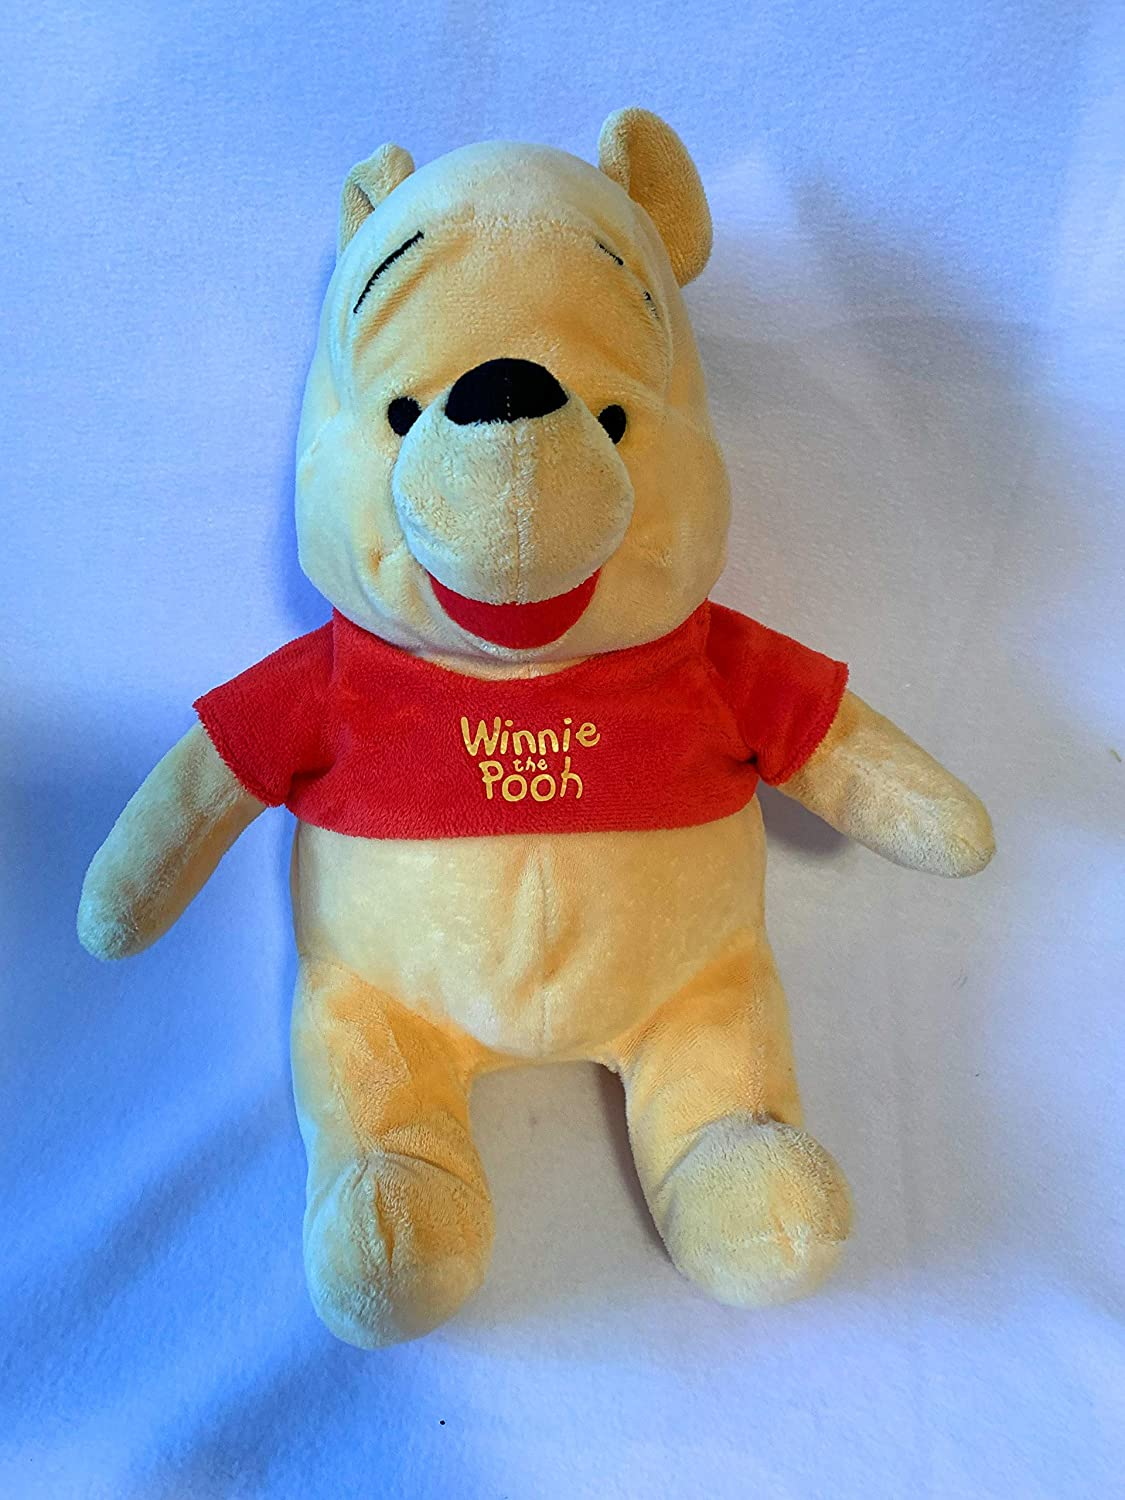 Weighted stuffed bear, Winnie the Pooh sensory toy with 3 1/2 lbs